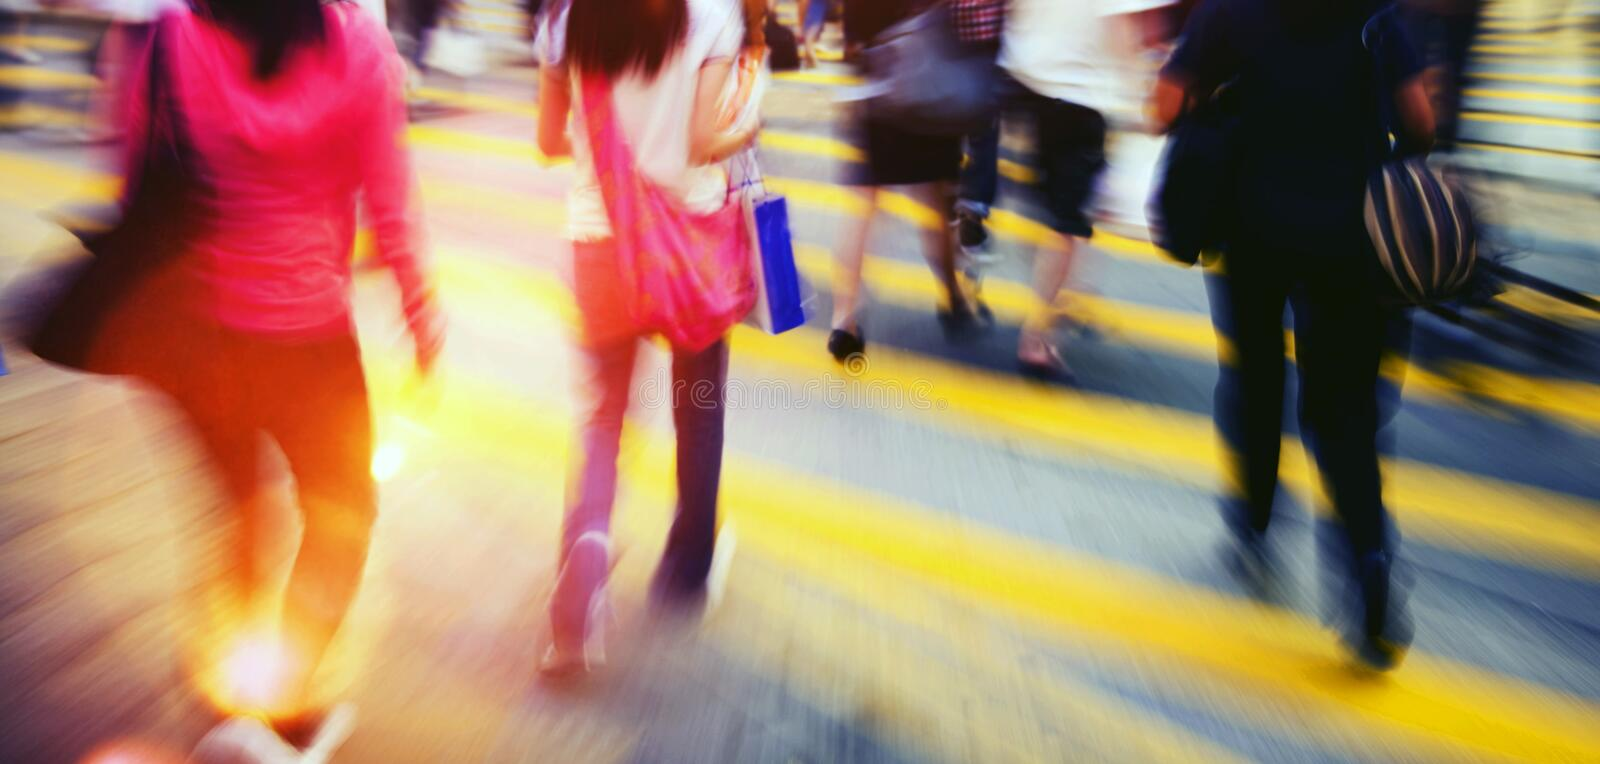 Group of People Pedestrian Rush Hour Concept royalty free stock photography